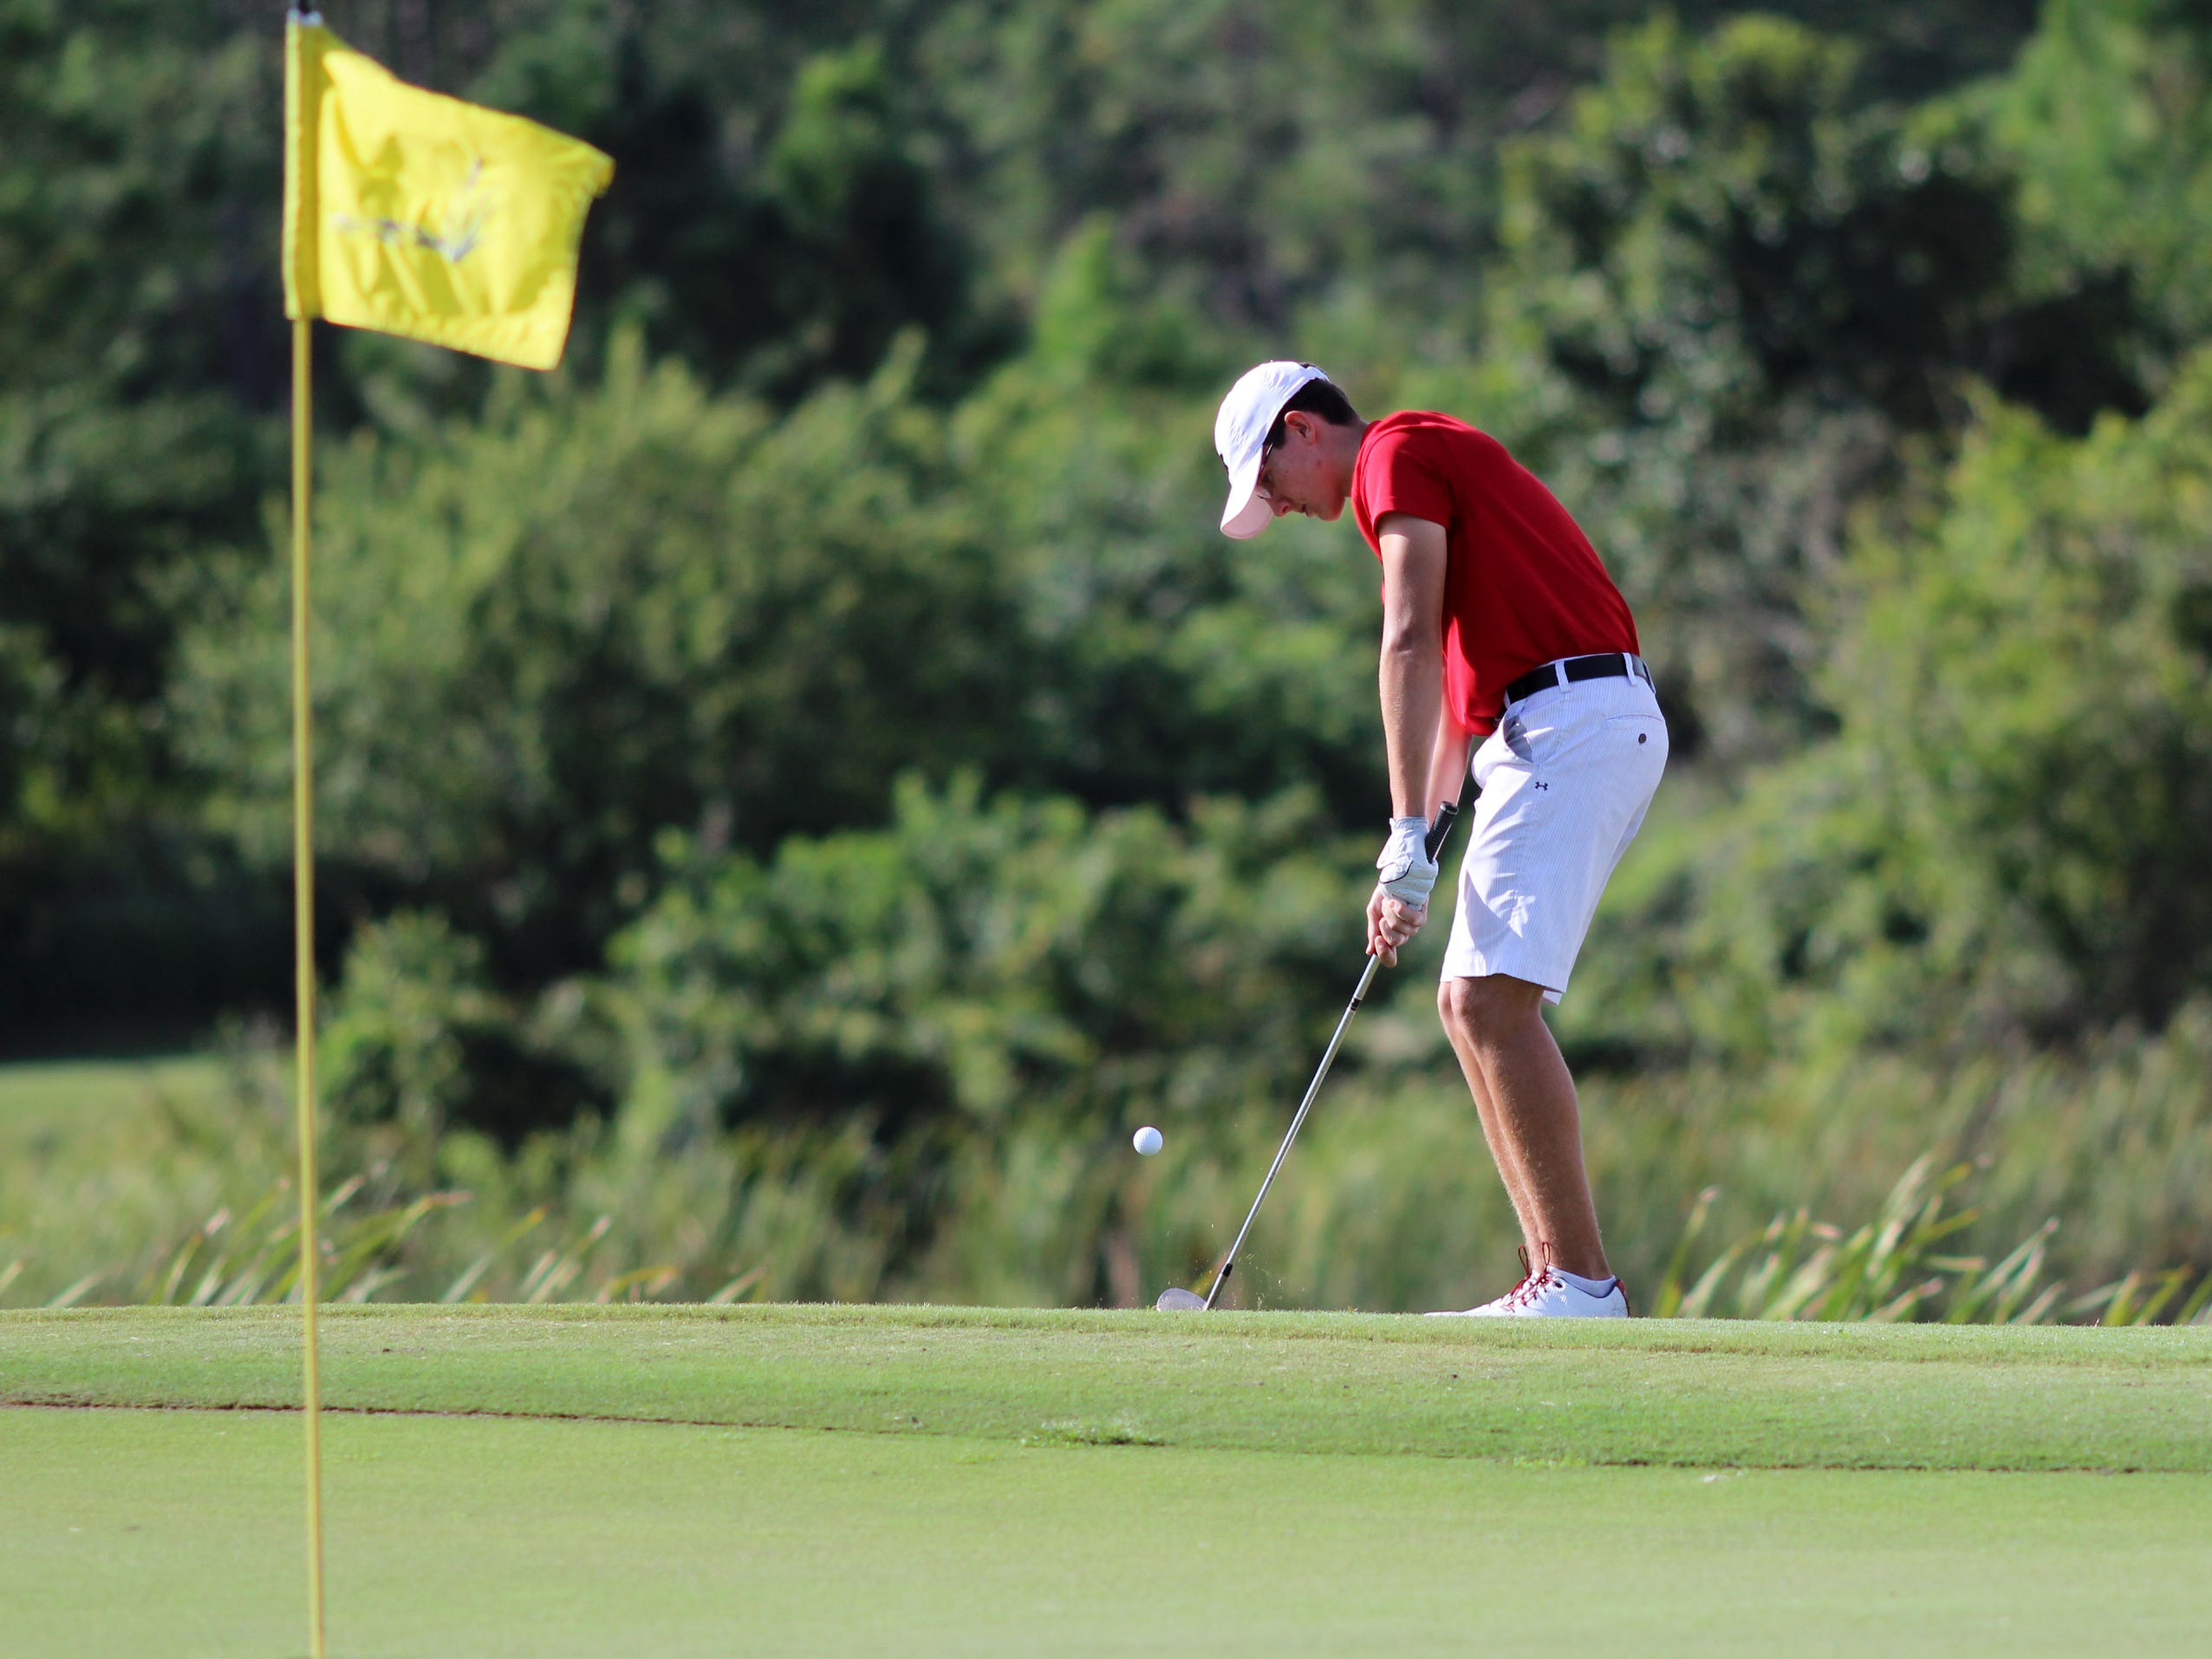 ECS' Shane Reynolds chips the ball during the Boys' HS District Tournament Tuesday morning at the Golf Club of the Everglades.